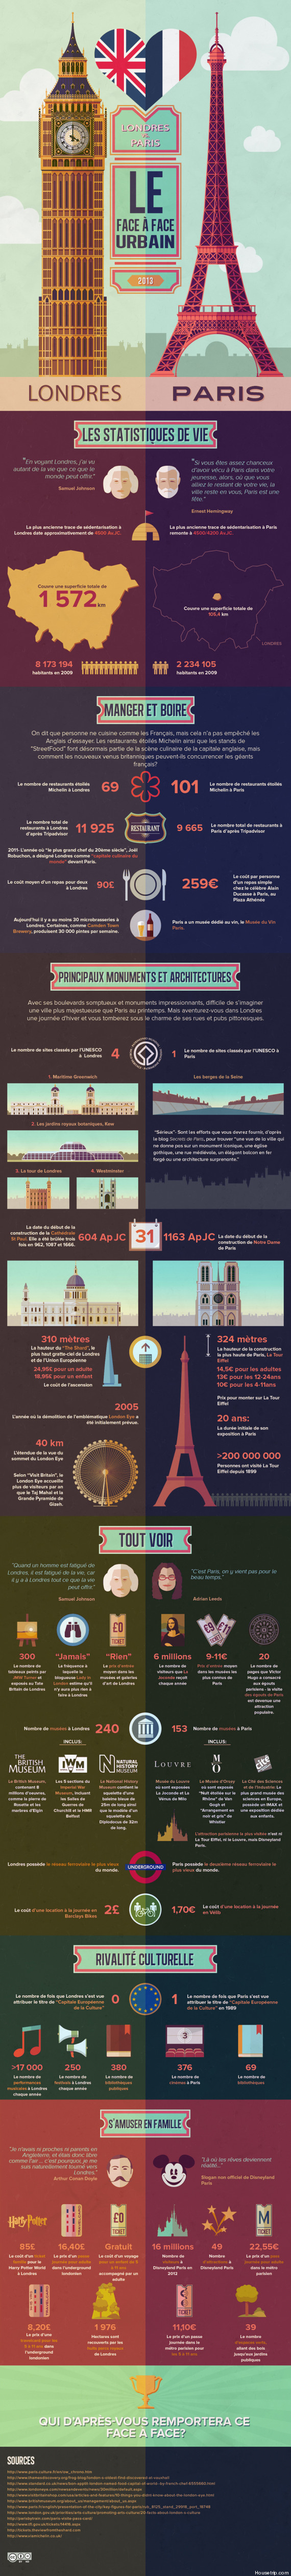 infographie Londres vs Paris